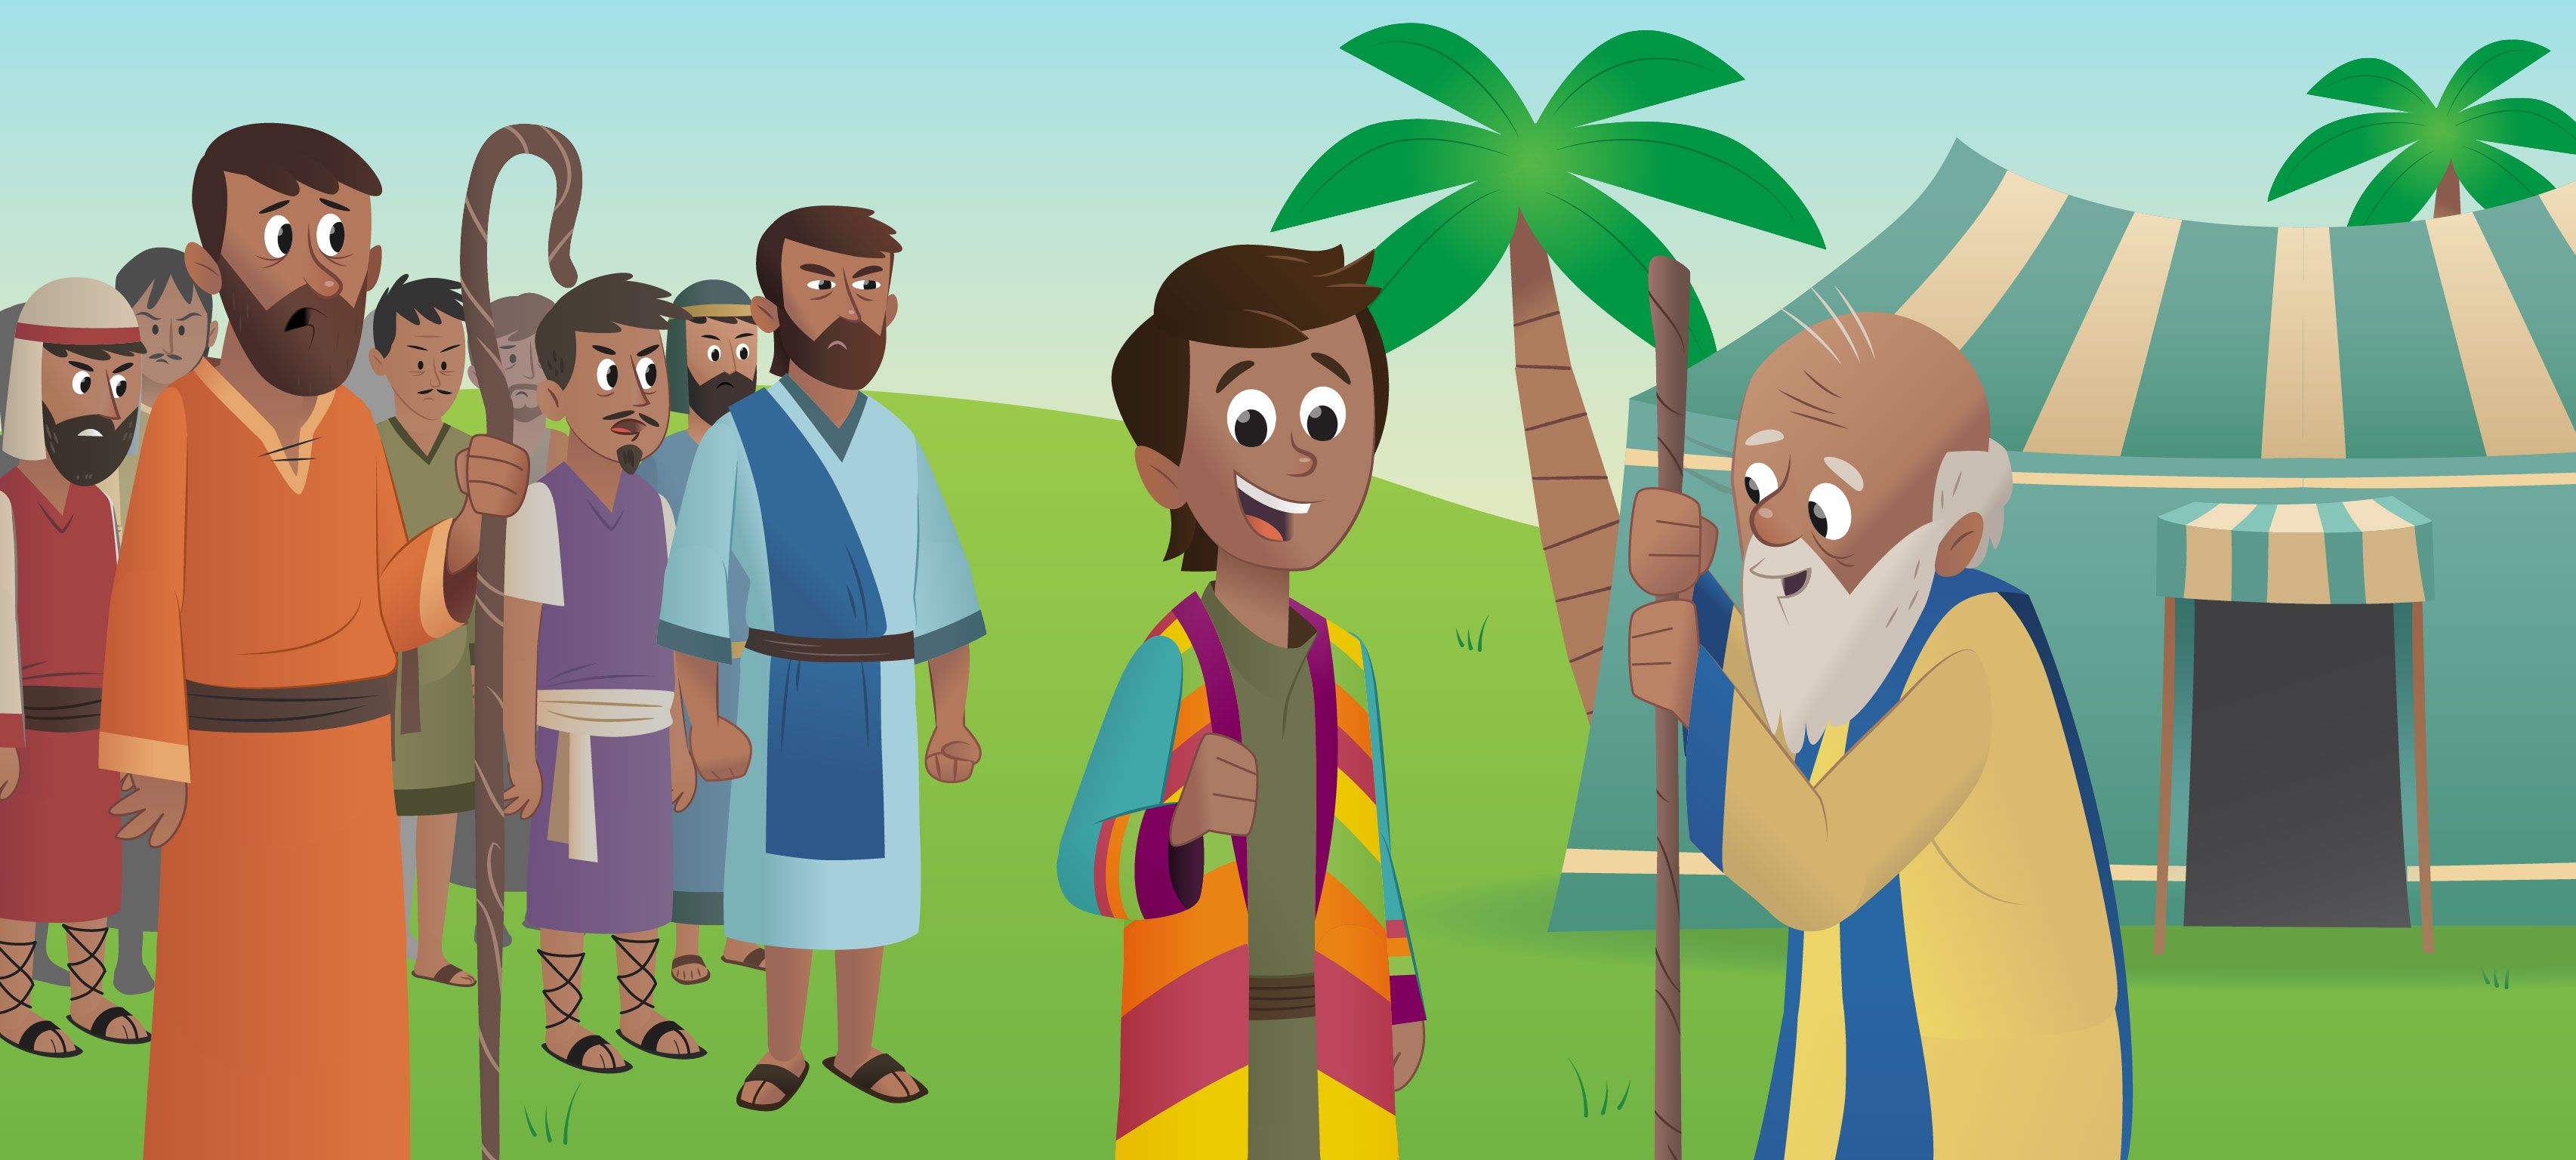 The Dreamer Bible App for Kids | Joseph-coat of many colors ...